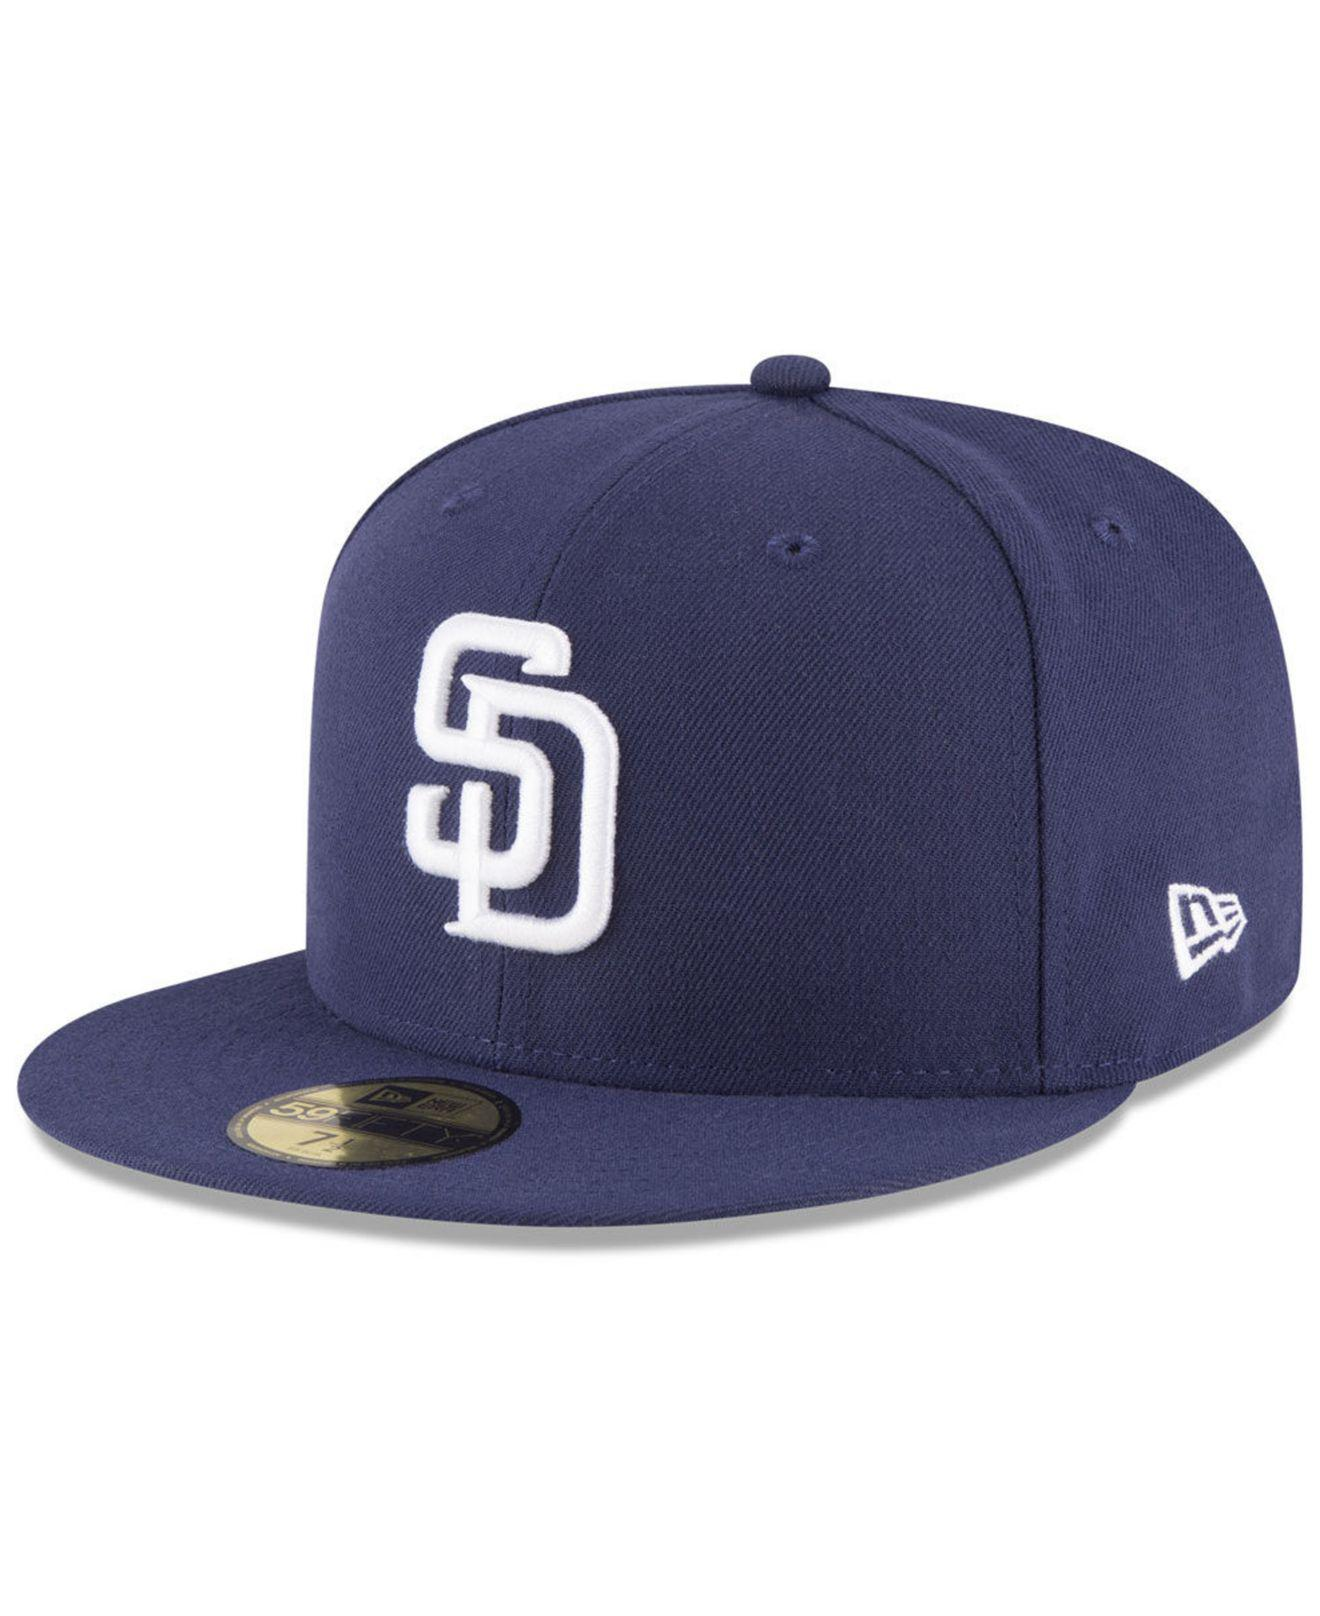 best cheap d827b 0a0c0 KTZ San Diego Padres Sandlot Patch 59fifty Fitted Cap in Blue for ...